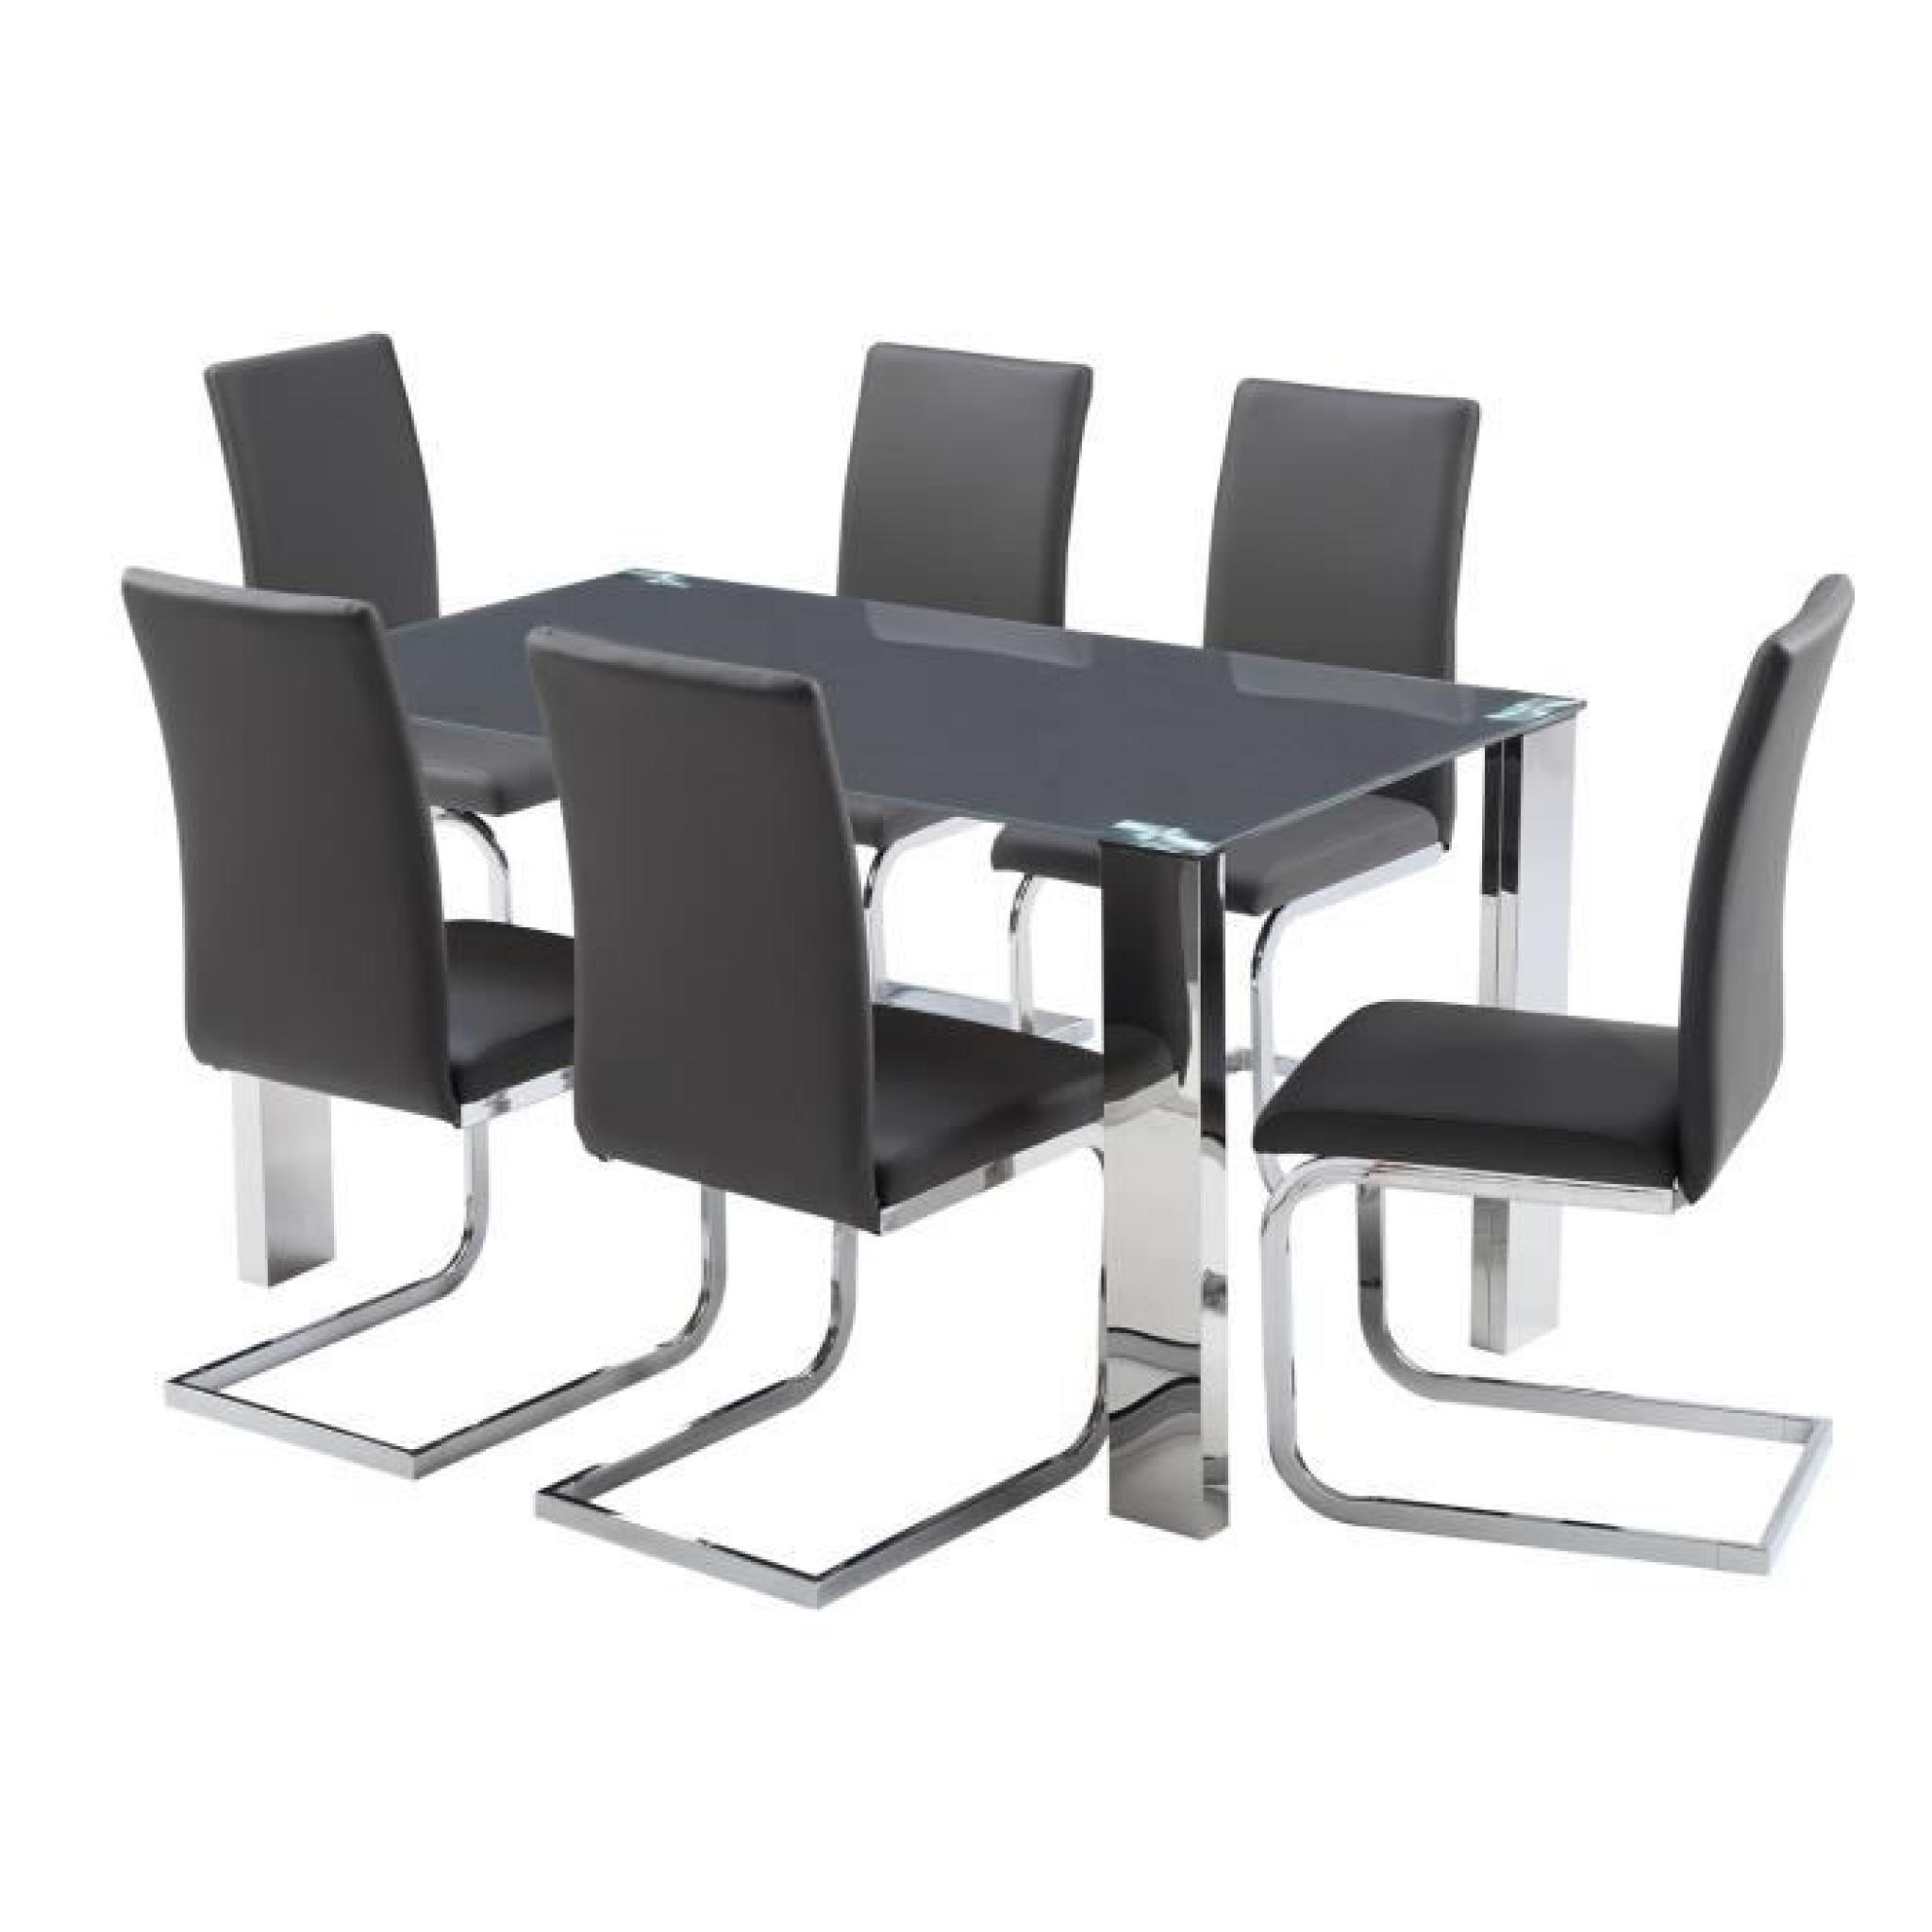 Divine ensemble table manger 6 chaises en pvc gris for Ensemble table et chaises salle a manger